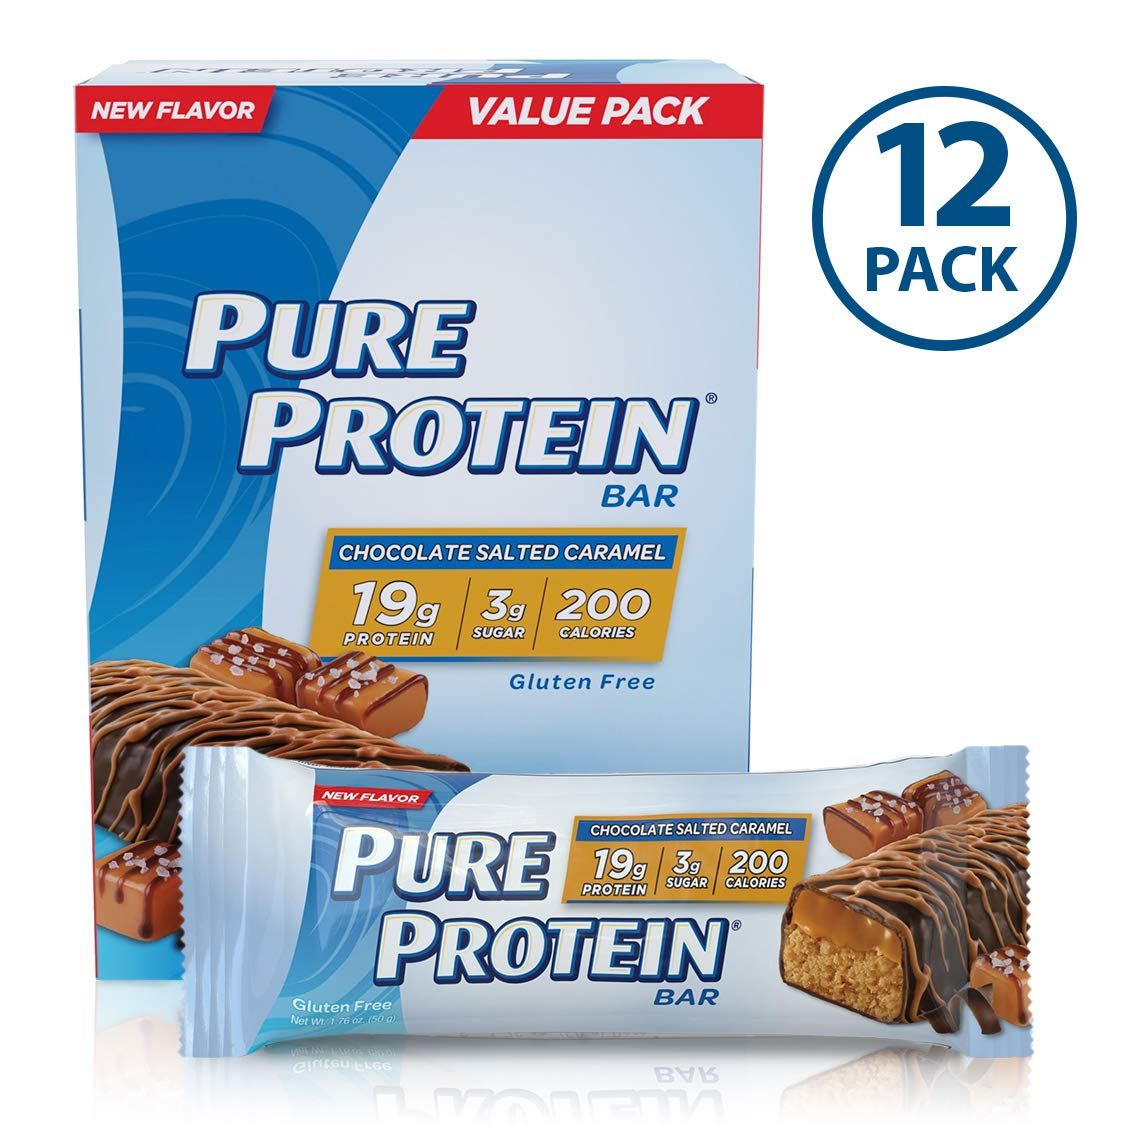 Pure Protein Bars, High Protein, Nutritious Snacks to Support Energy, Low Sugar, Gluten Free, Chocolate Salted Caramel, 1.76oz, 12 Pack by Pure Protein